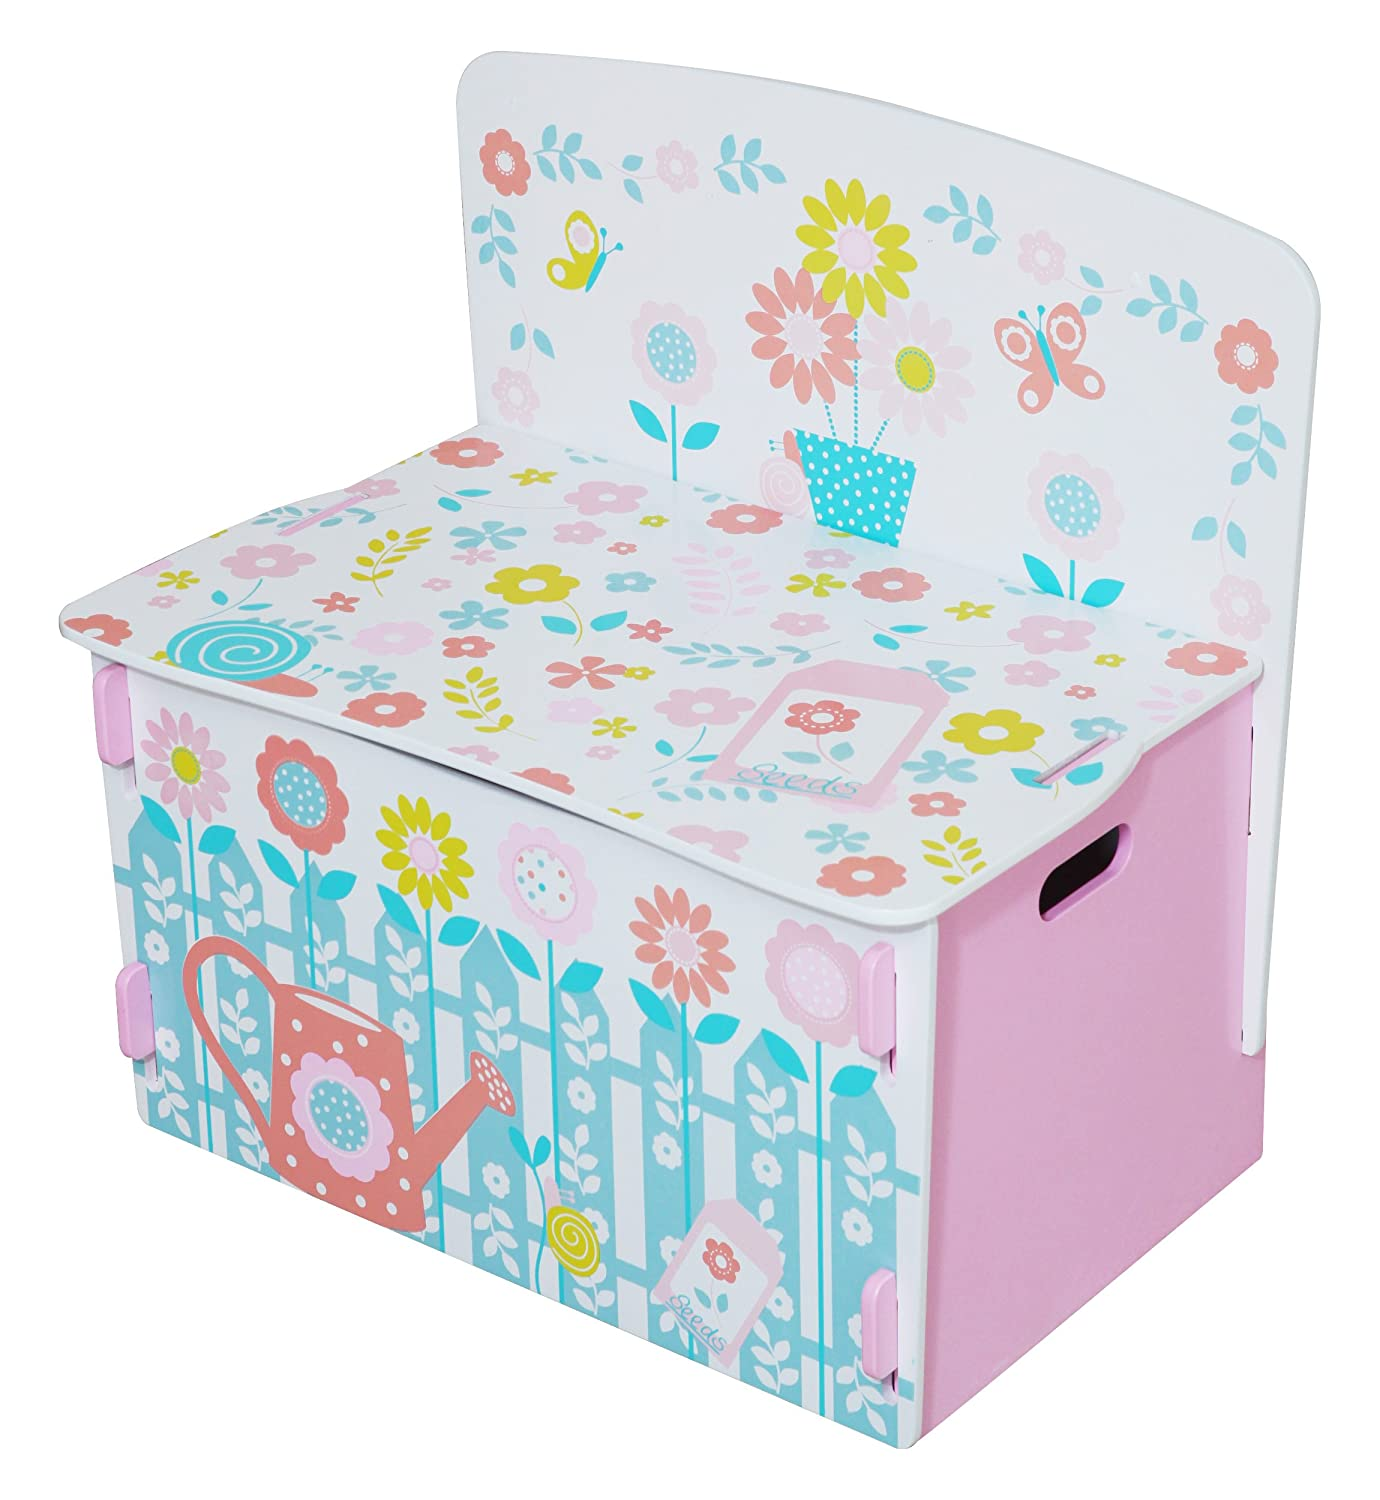 Country Cottage Play Box Kidsaw CCPB